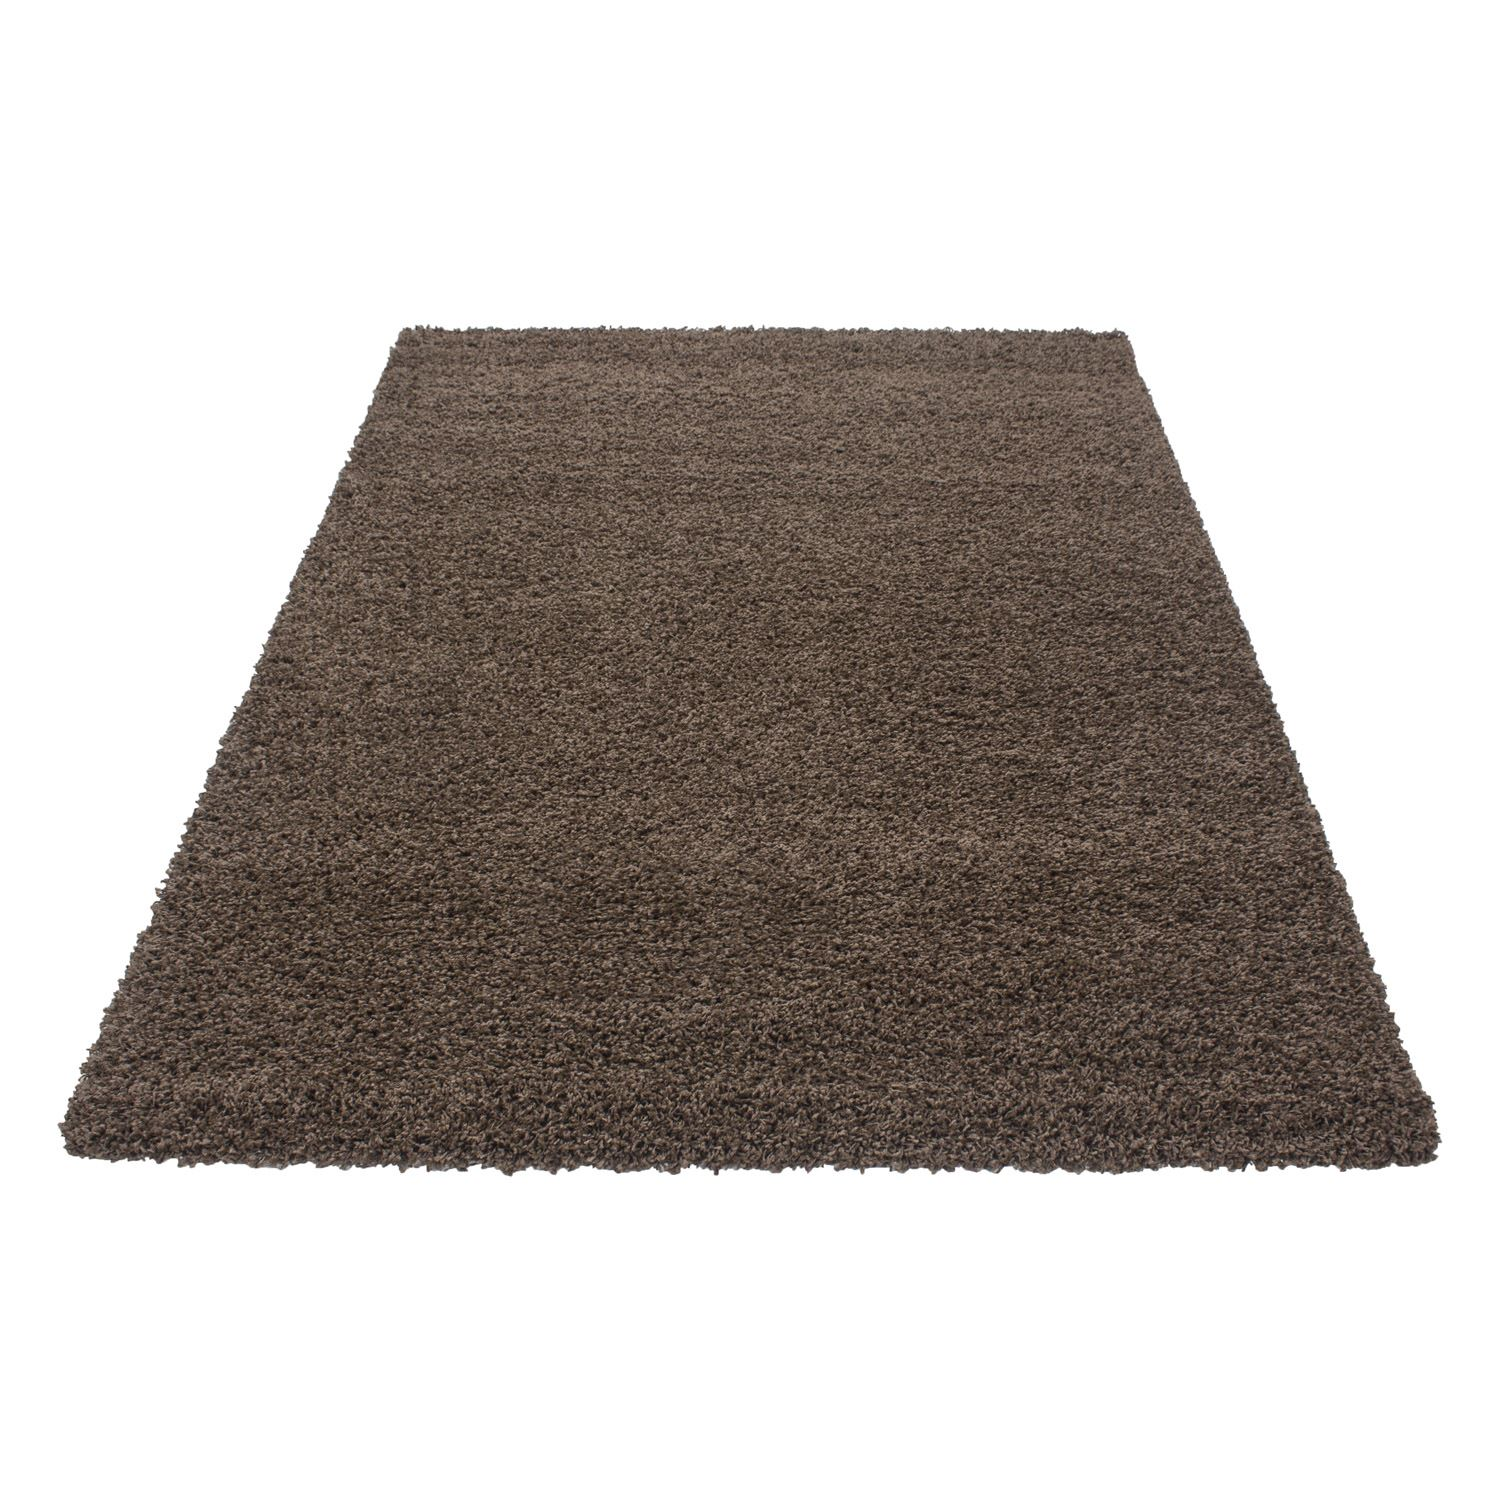 5cm Thick Soft Touch Shaggy Shag Pile Rugs Round Runner